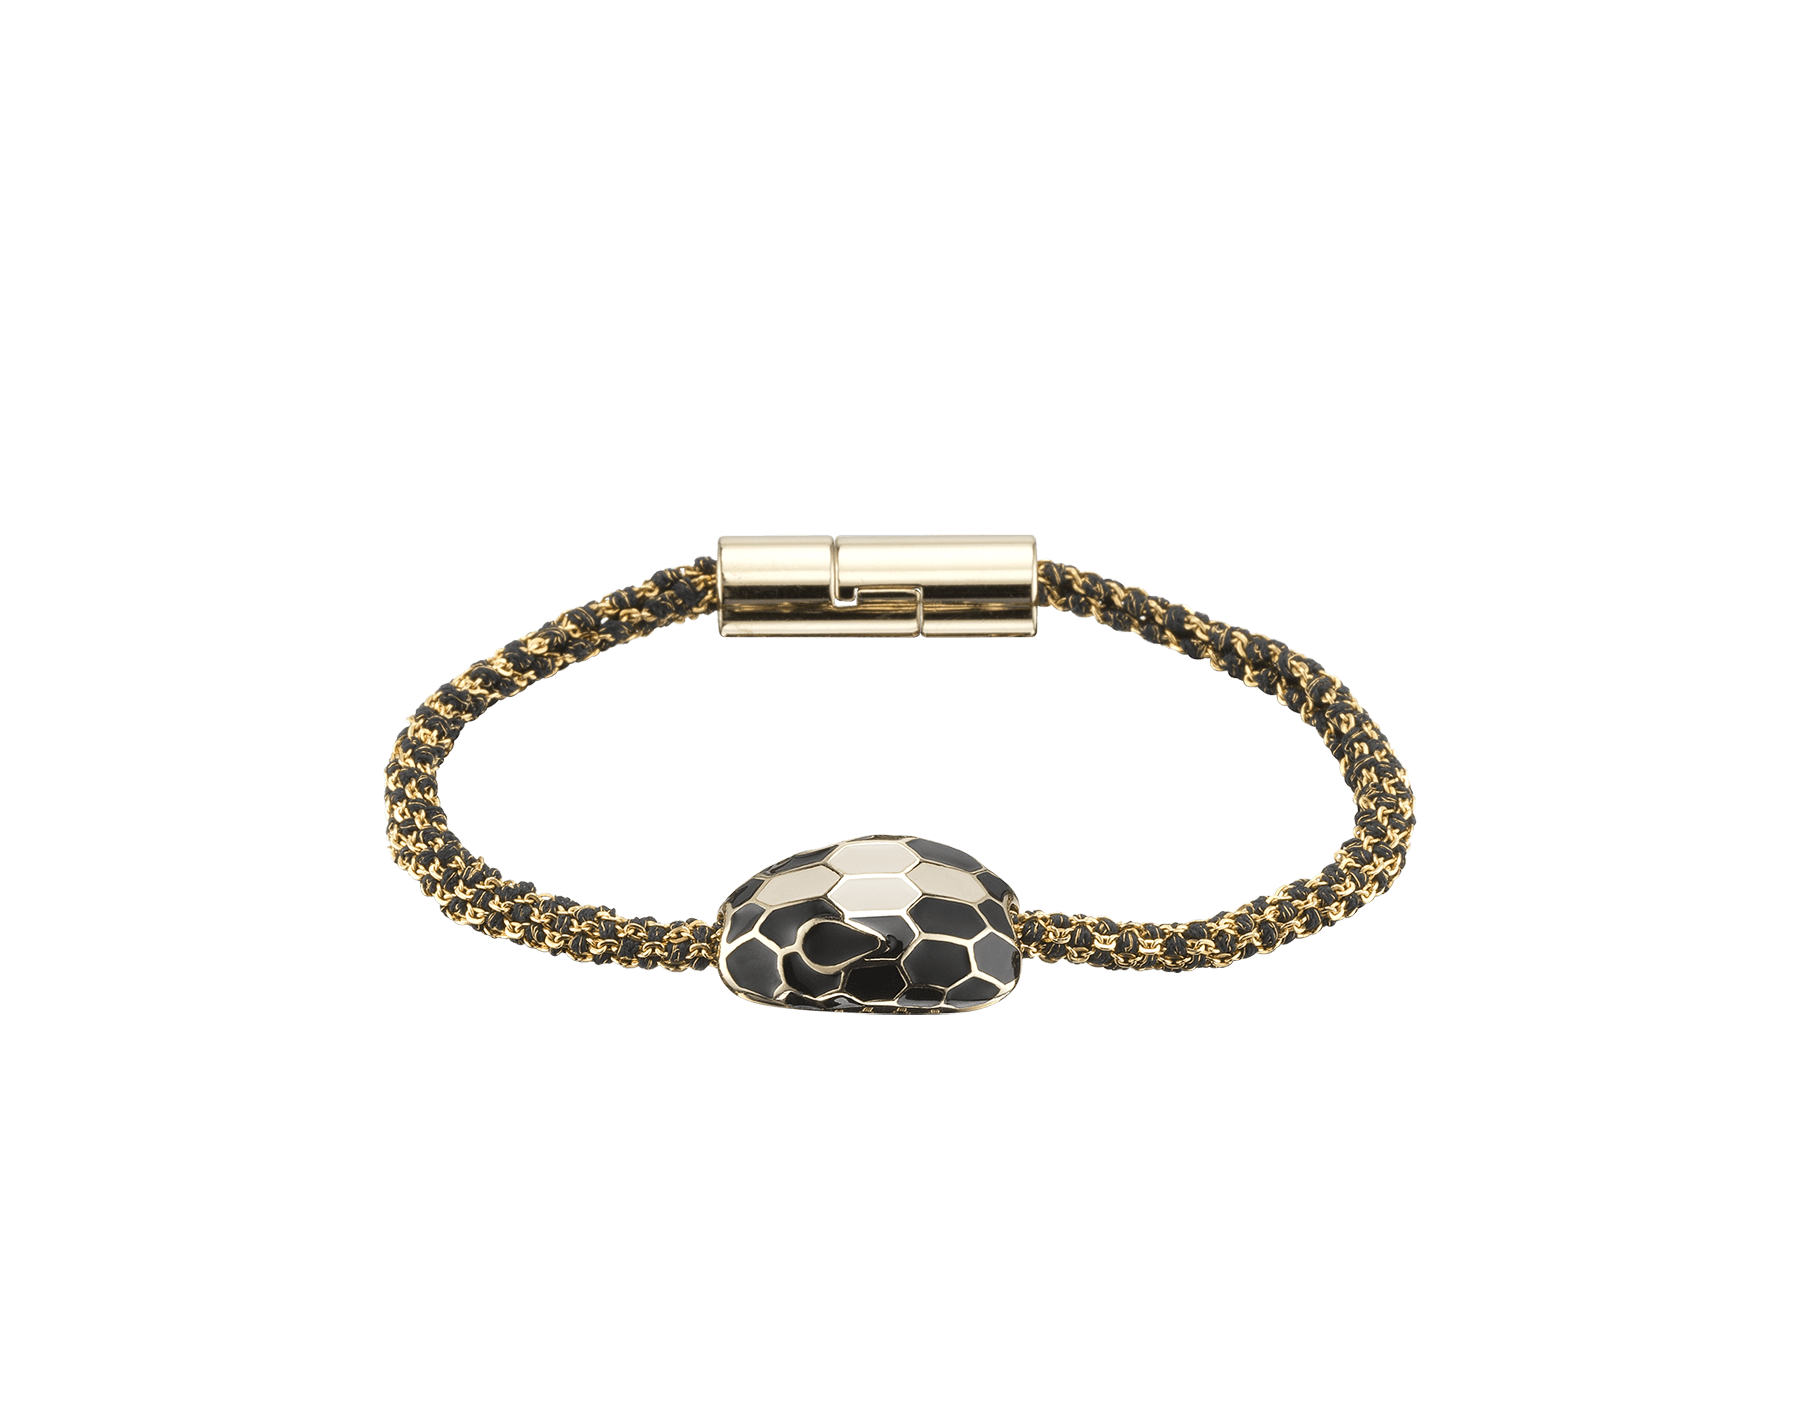 Serpenti Forever bracelet in black metallic woven silk with an iconic snakehead décor in black and white enamel. RollingChain-S-B image 1